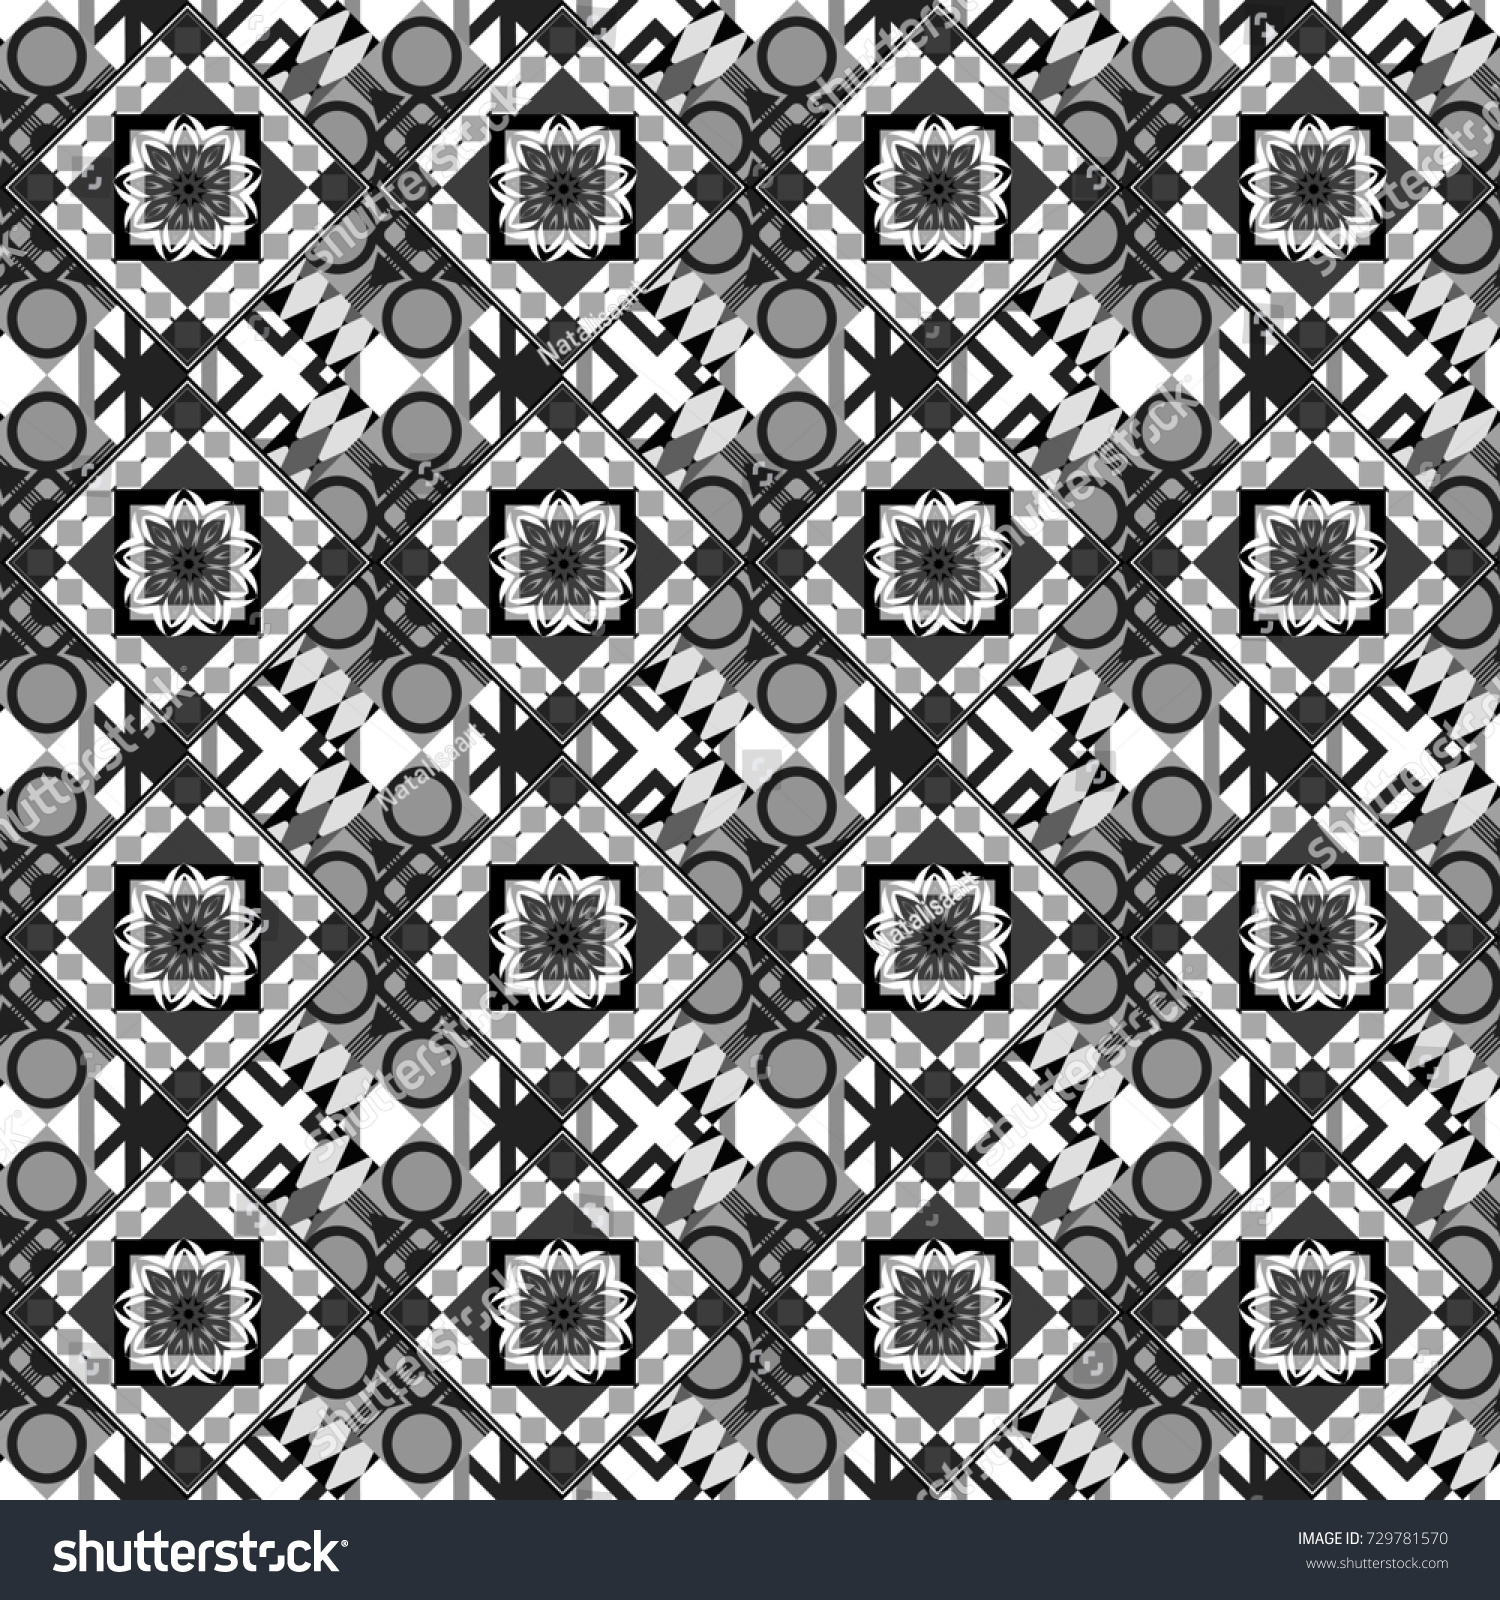 Creative Seamless Pattern, Modern Diagonal Abstract Background With Geometric Elements